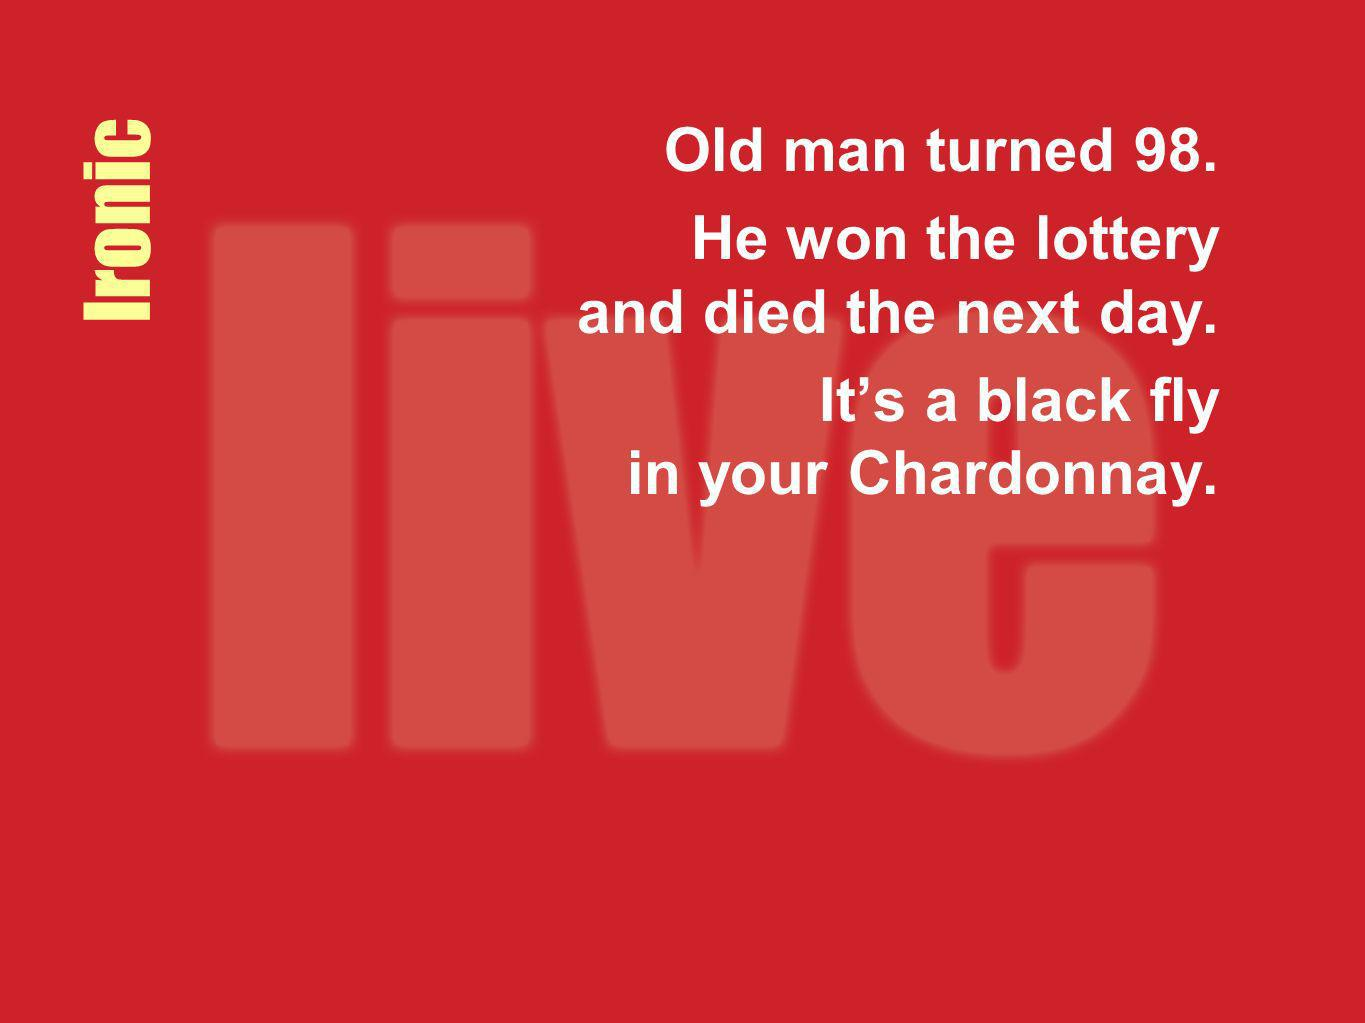 Ironic Old man turned 98. He won the lottery and died the next day.